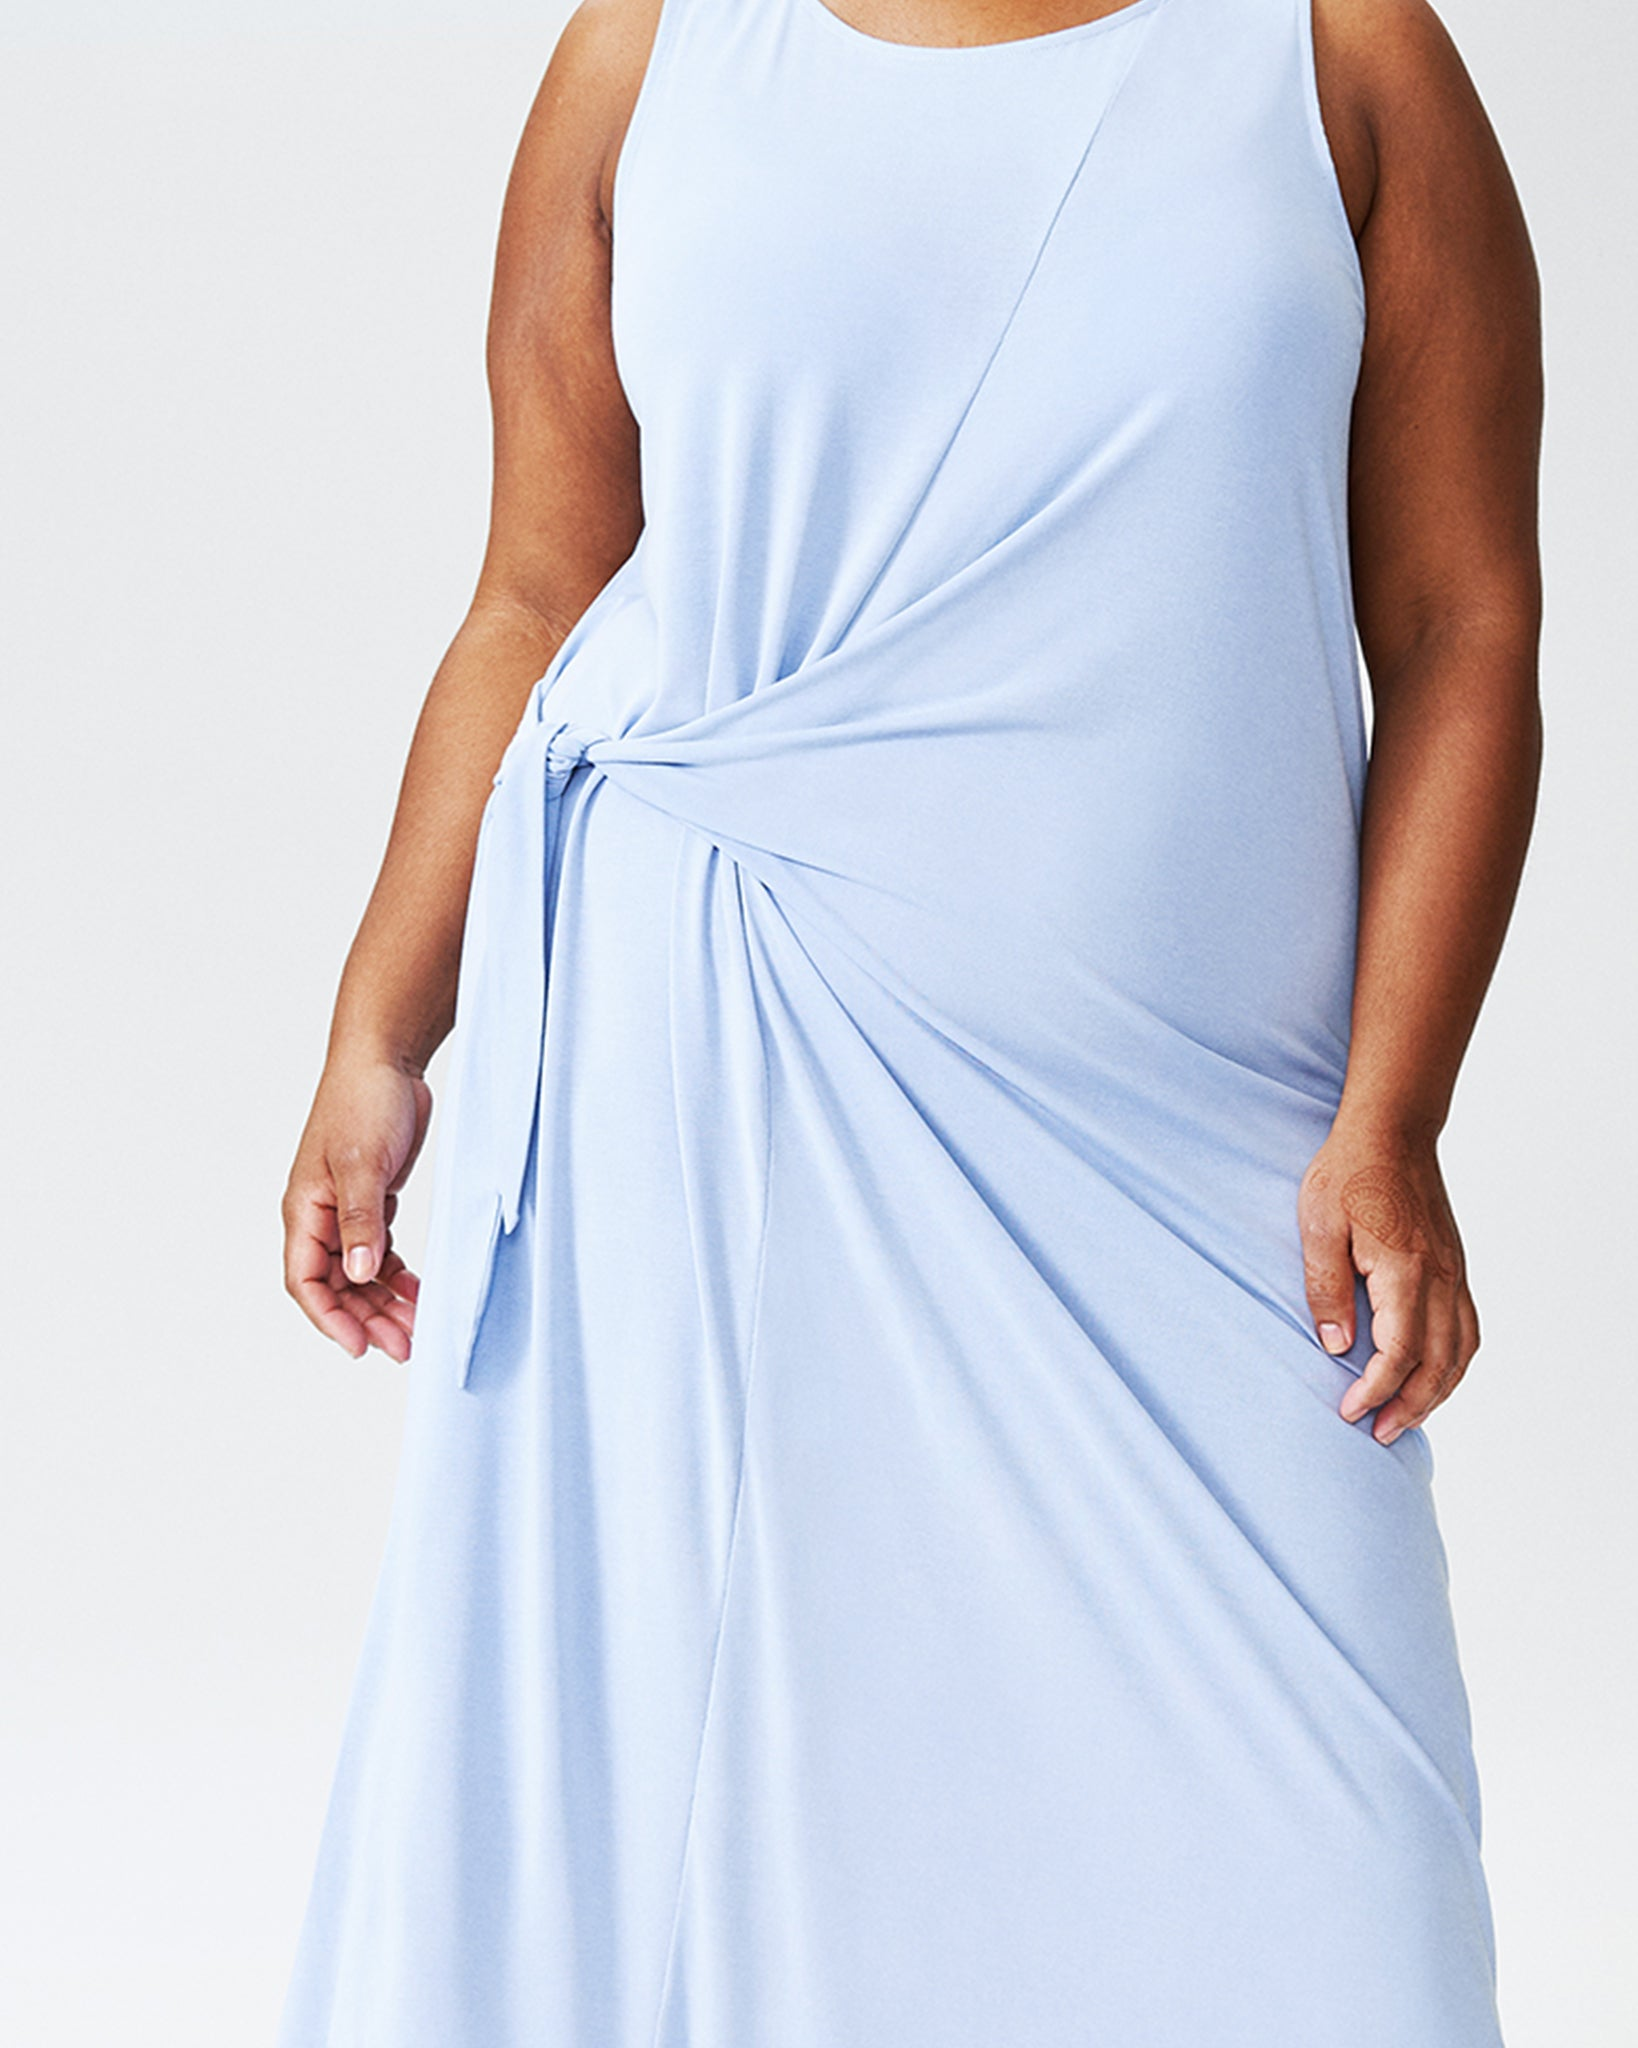 Katherine Side Tie Knot Dress - Periwinkle